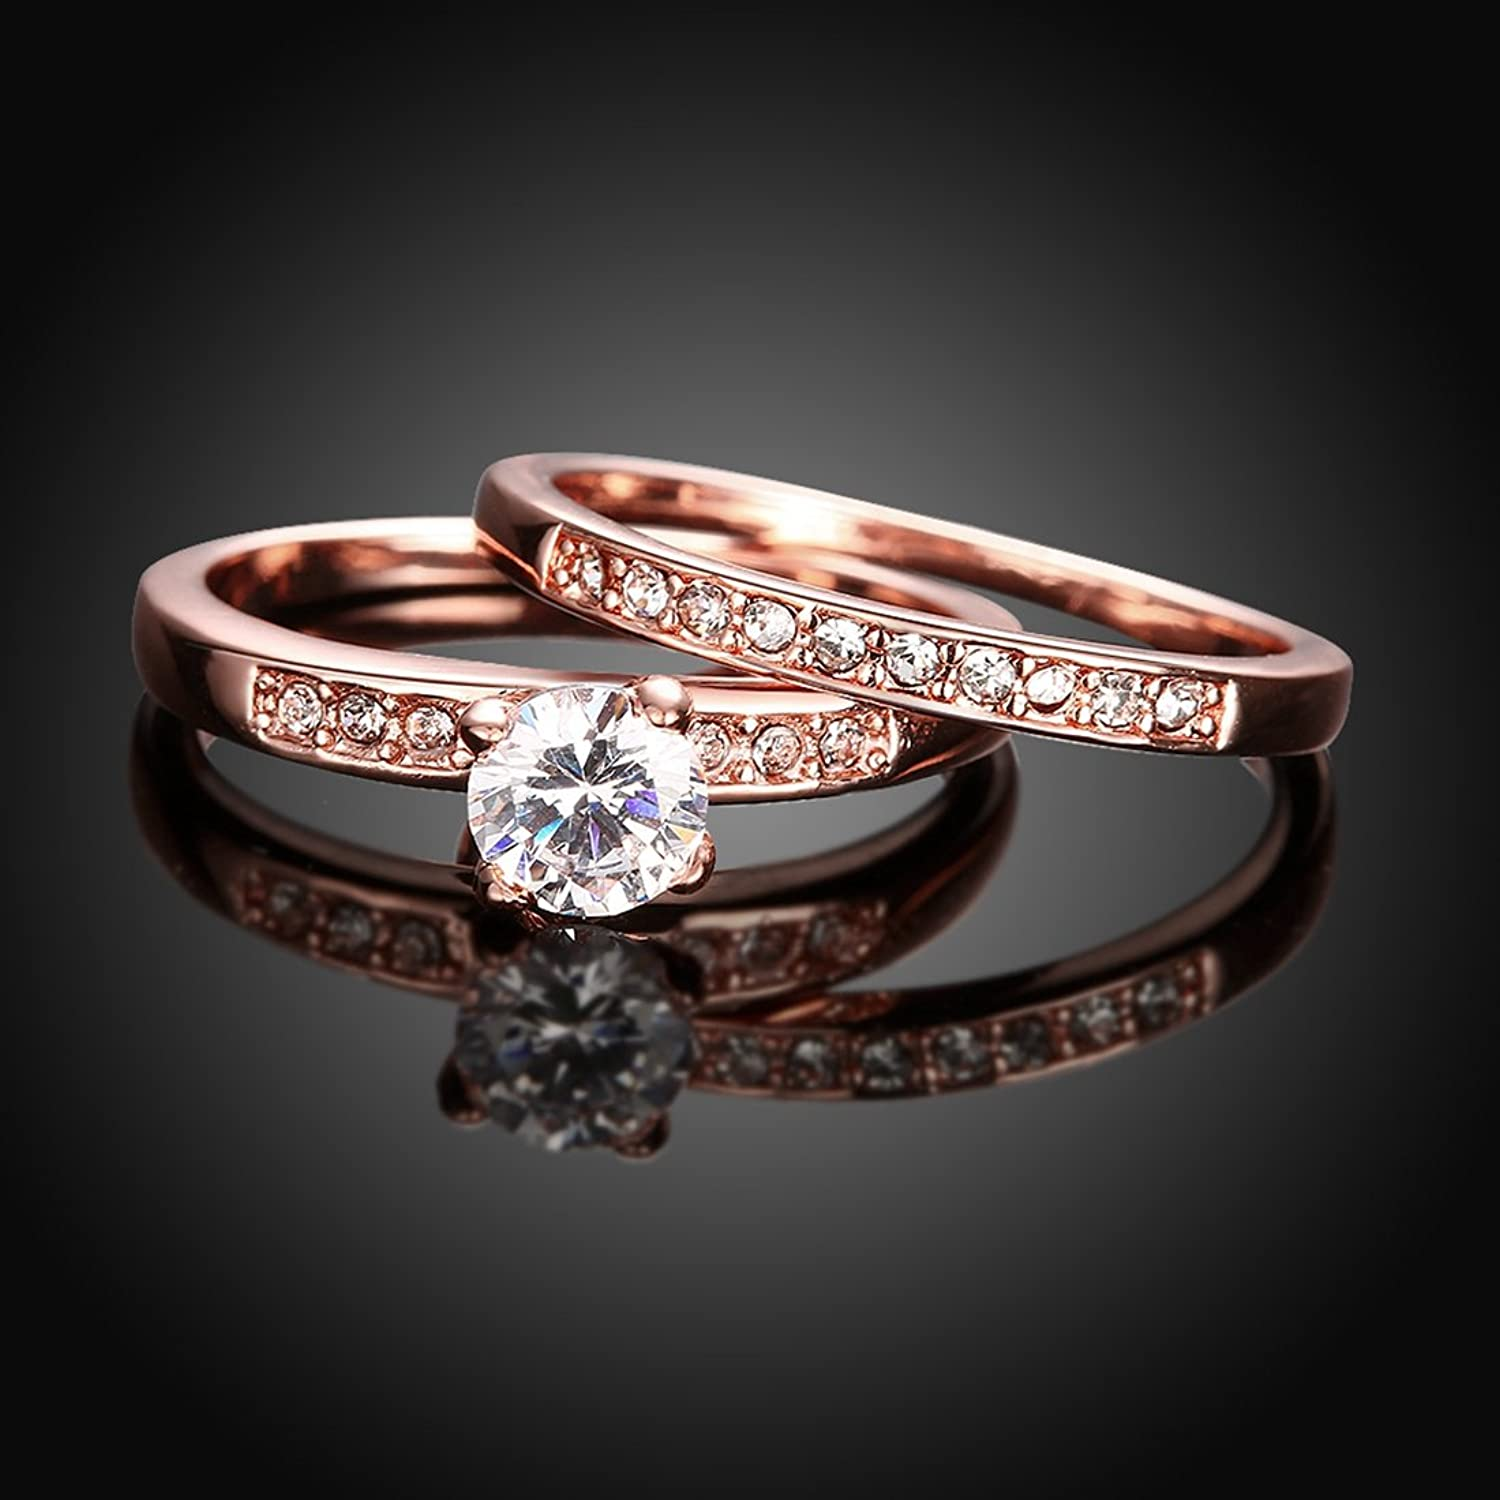 amazoncom eternity love womens pretty 18k rose gold plated solitaire cz crystal engagement rings set best promise rings for her anniversary wedding - Rose Gold Wedding Ring Set